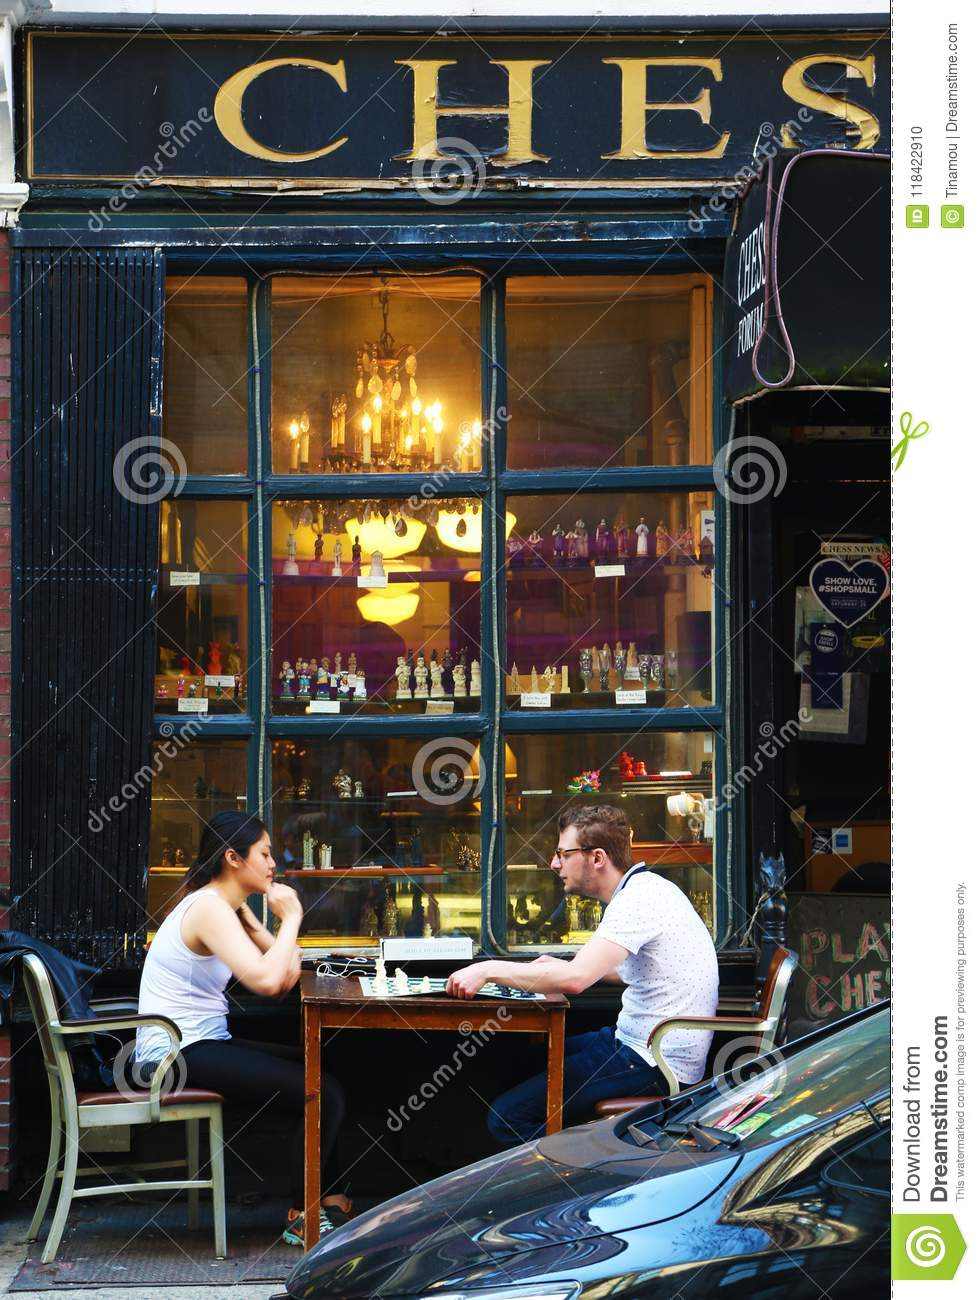 Chess Players Outdoor In Greenwich Village Editorial Image